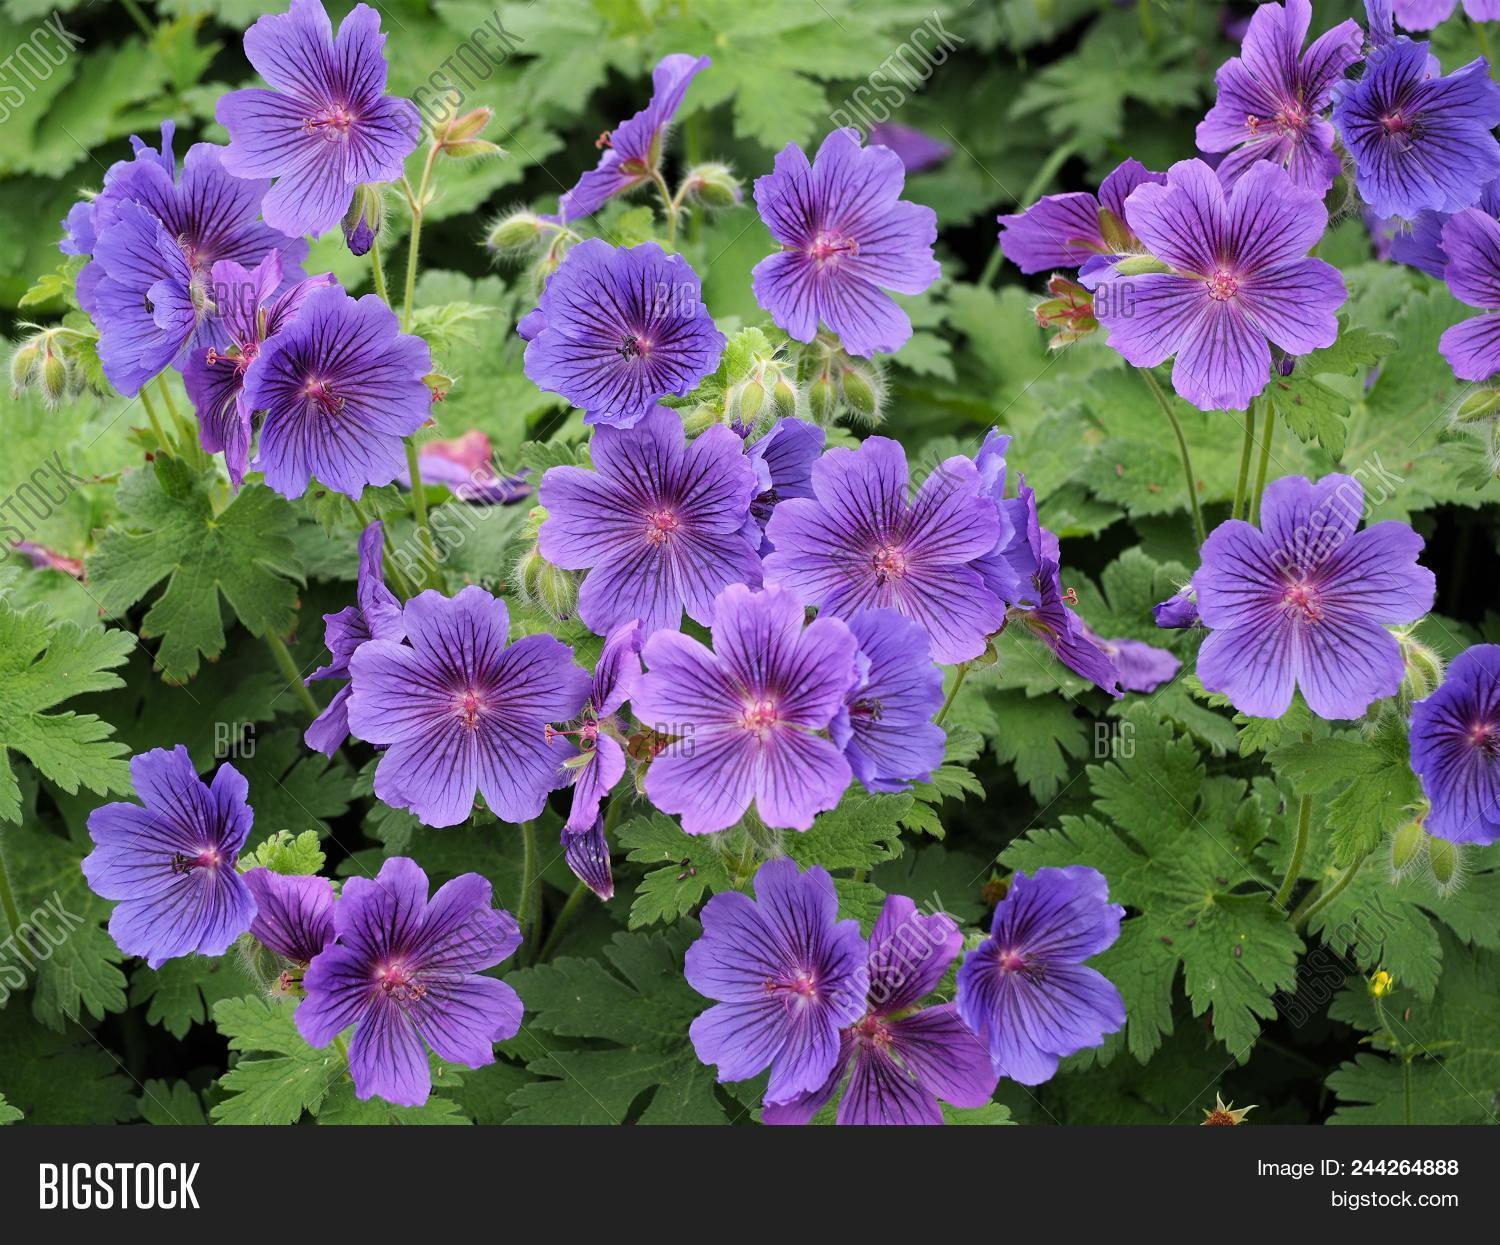 Pretty Purple Flowers Image Photo Free Trial Bigstock